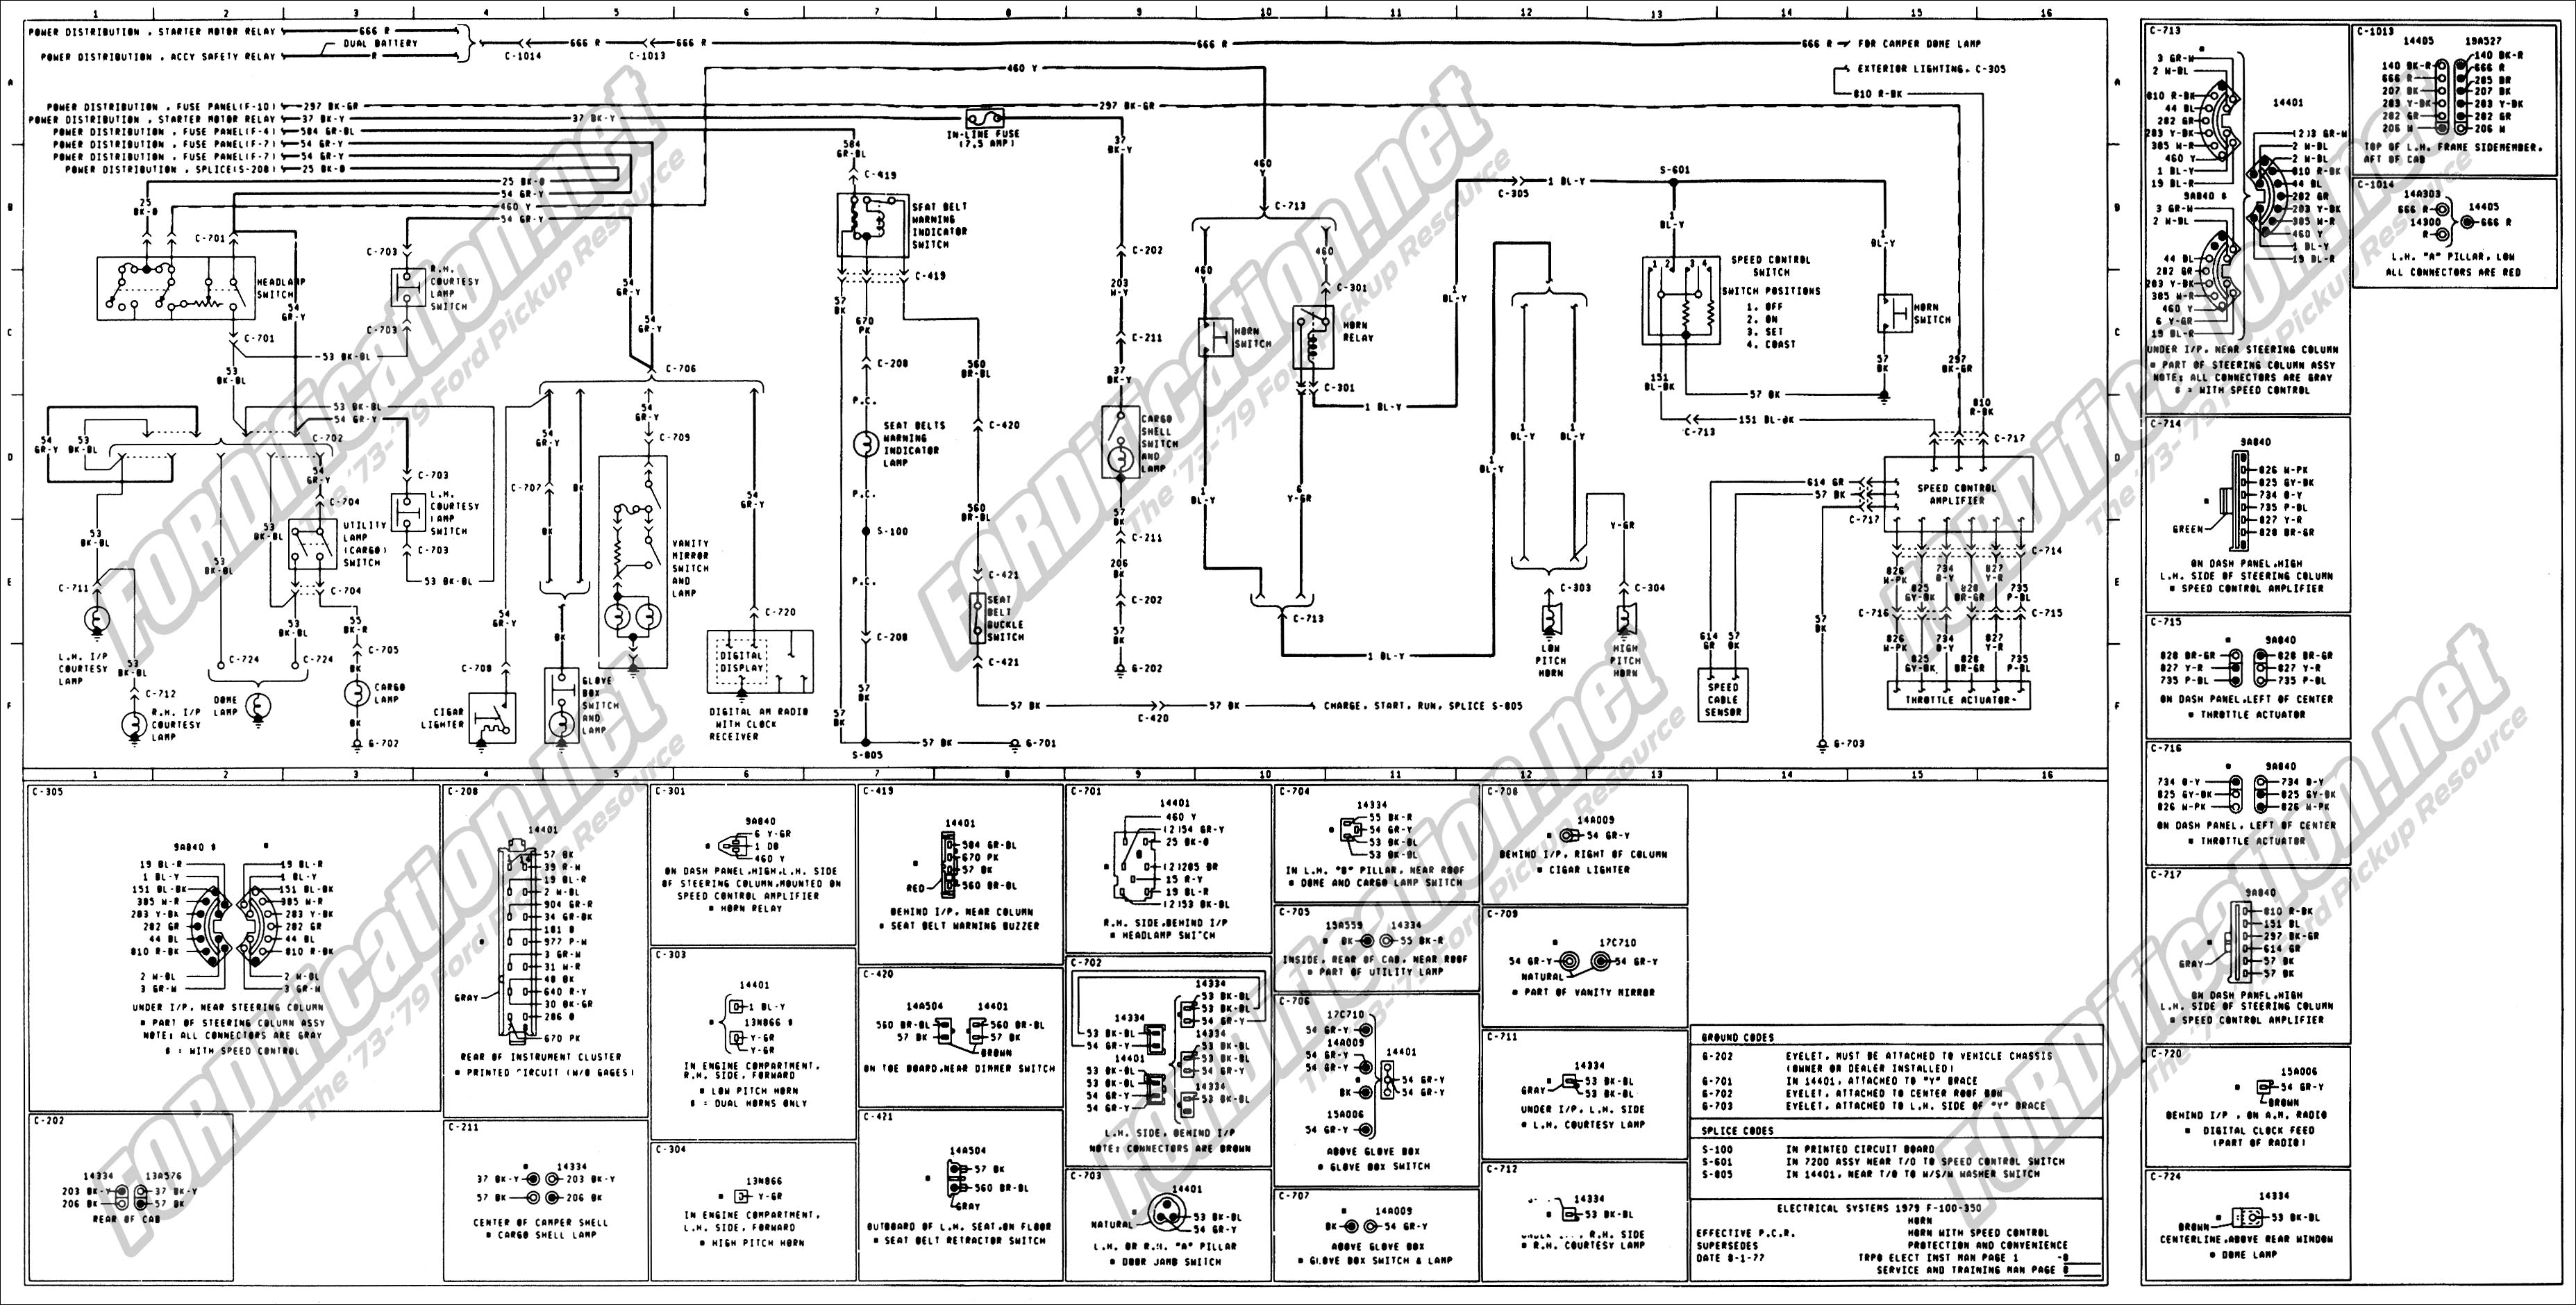 1973 Ford F 250 Wiring Schematics Starting Know About Diagram Trke Harness For Hd 79 Truck Simple Rh David Huggett Co Uk